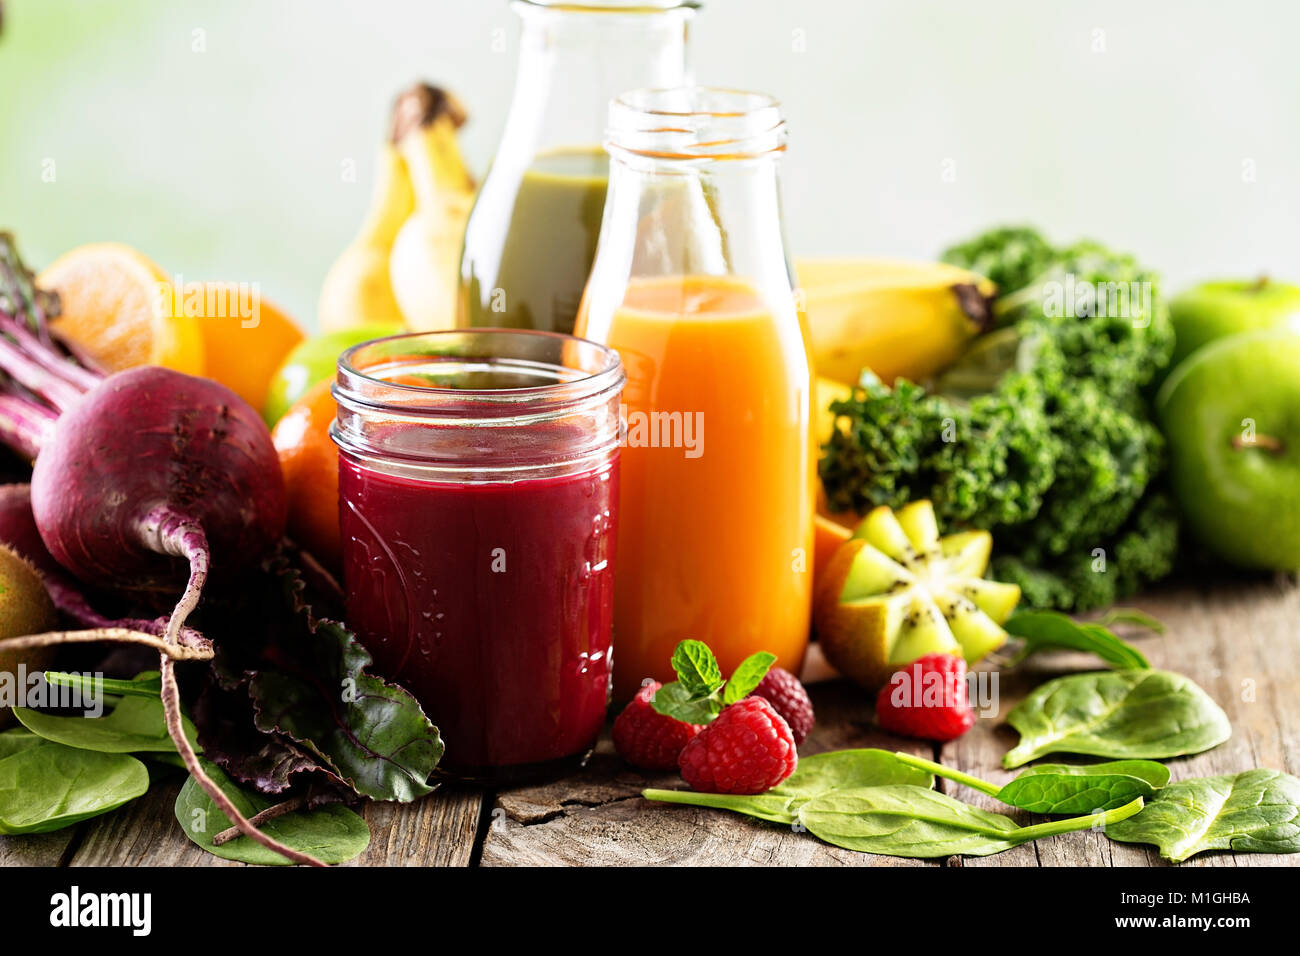 Fresh vegetable and fruit juices with beets, berries, oranges and greens - Stock Image